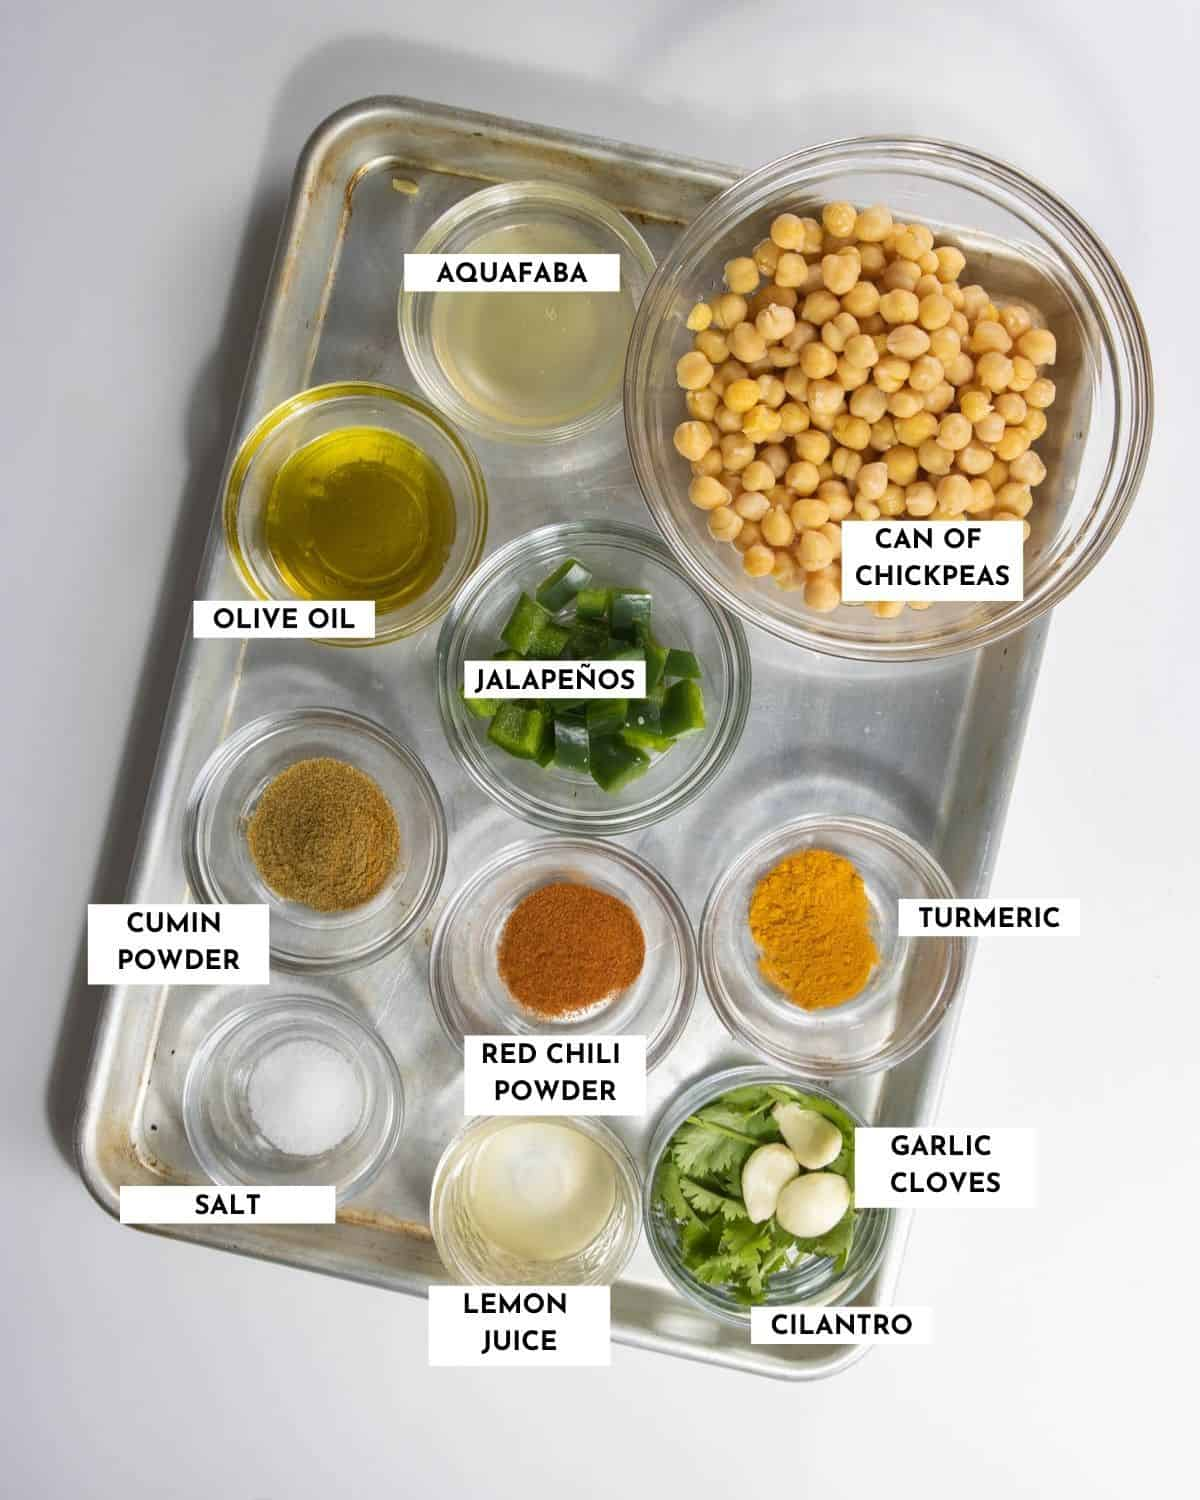 Labeled ingredients image - check recipe card for details and quantities!